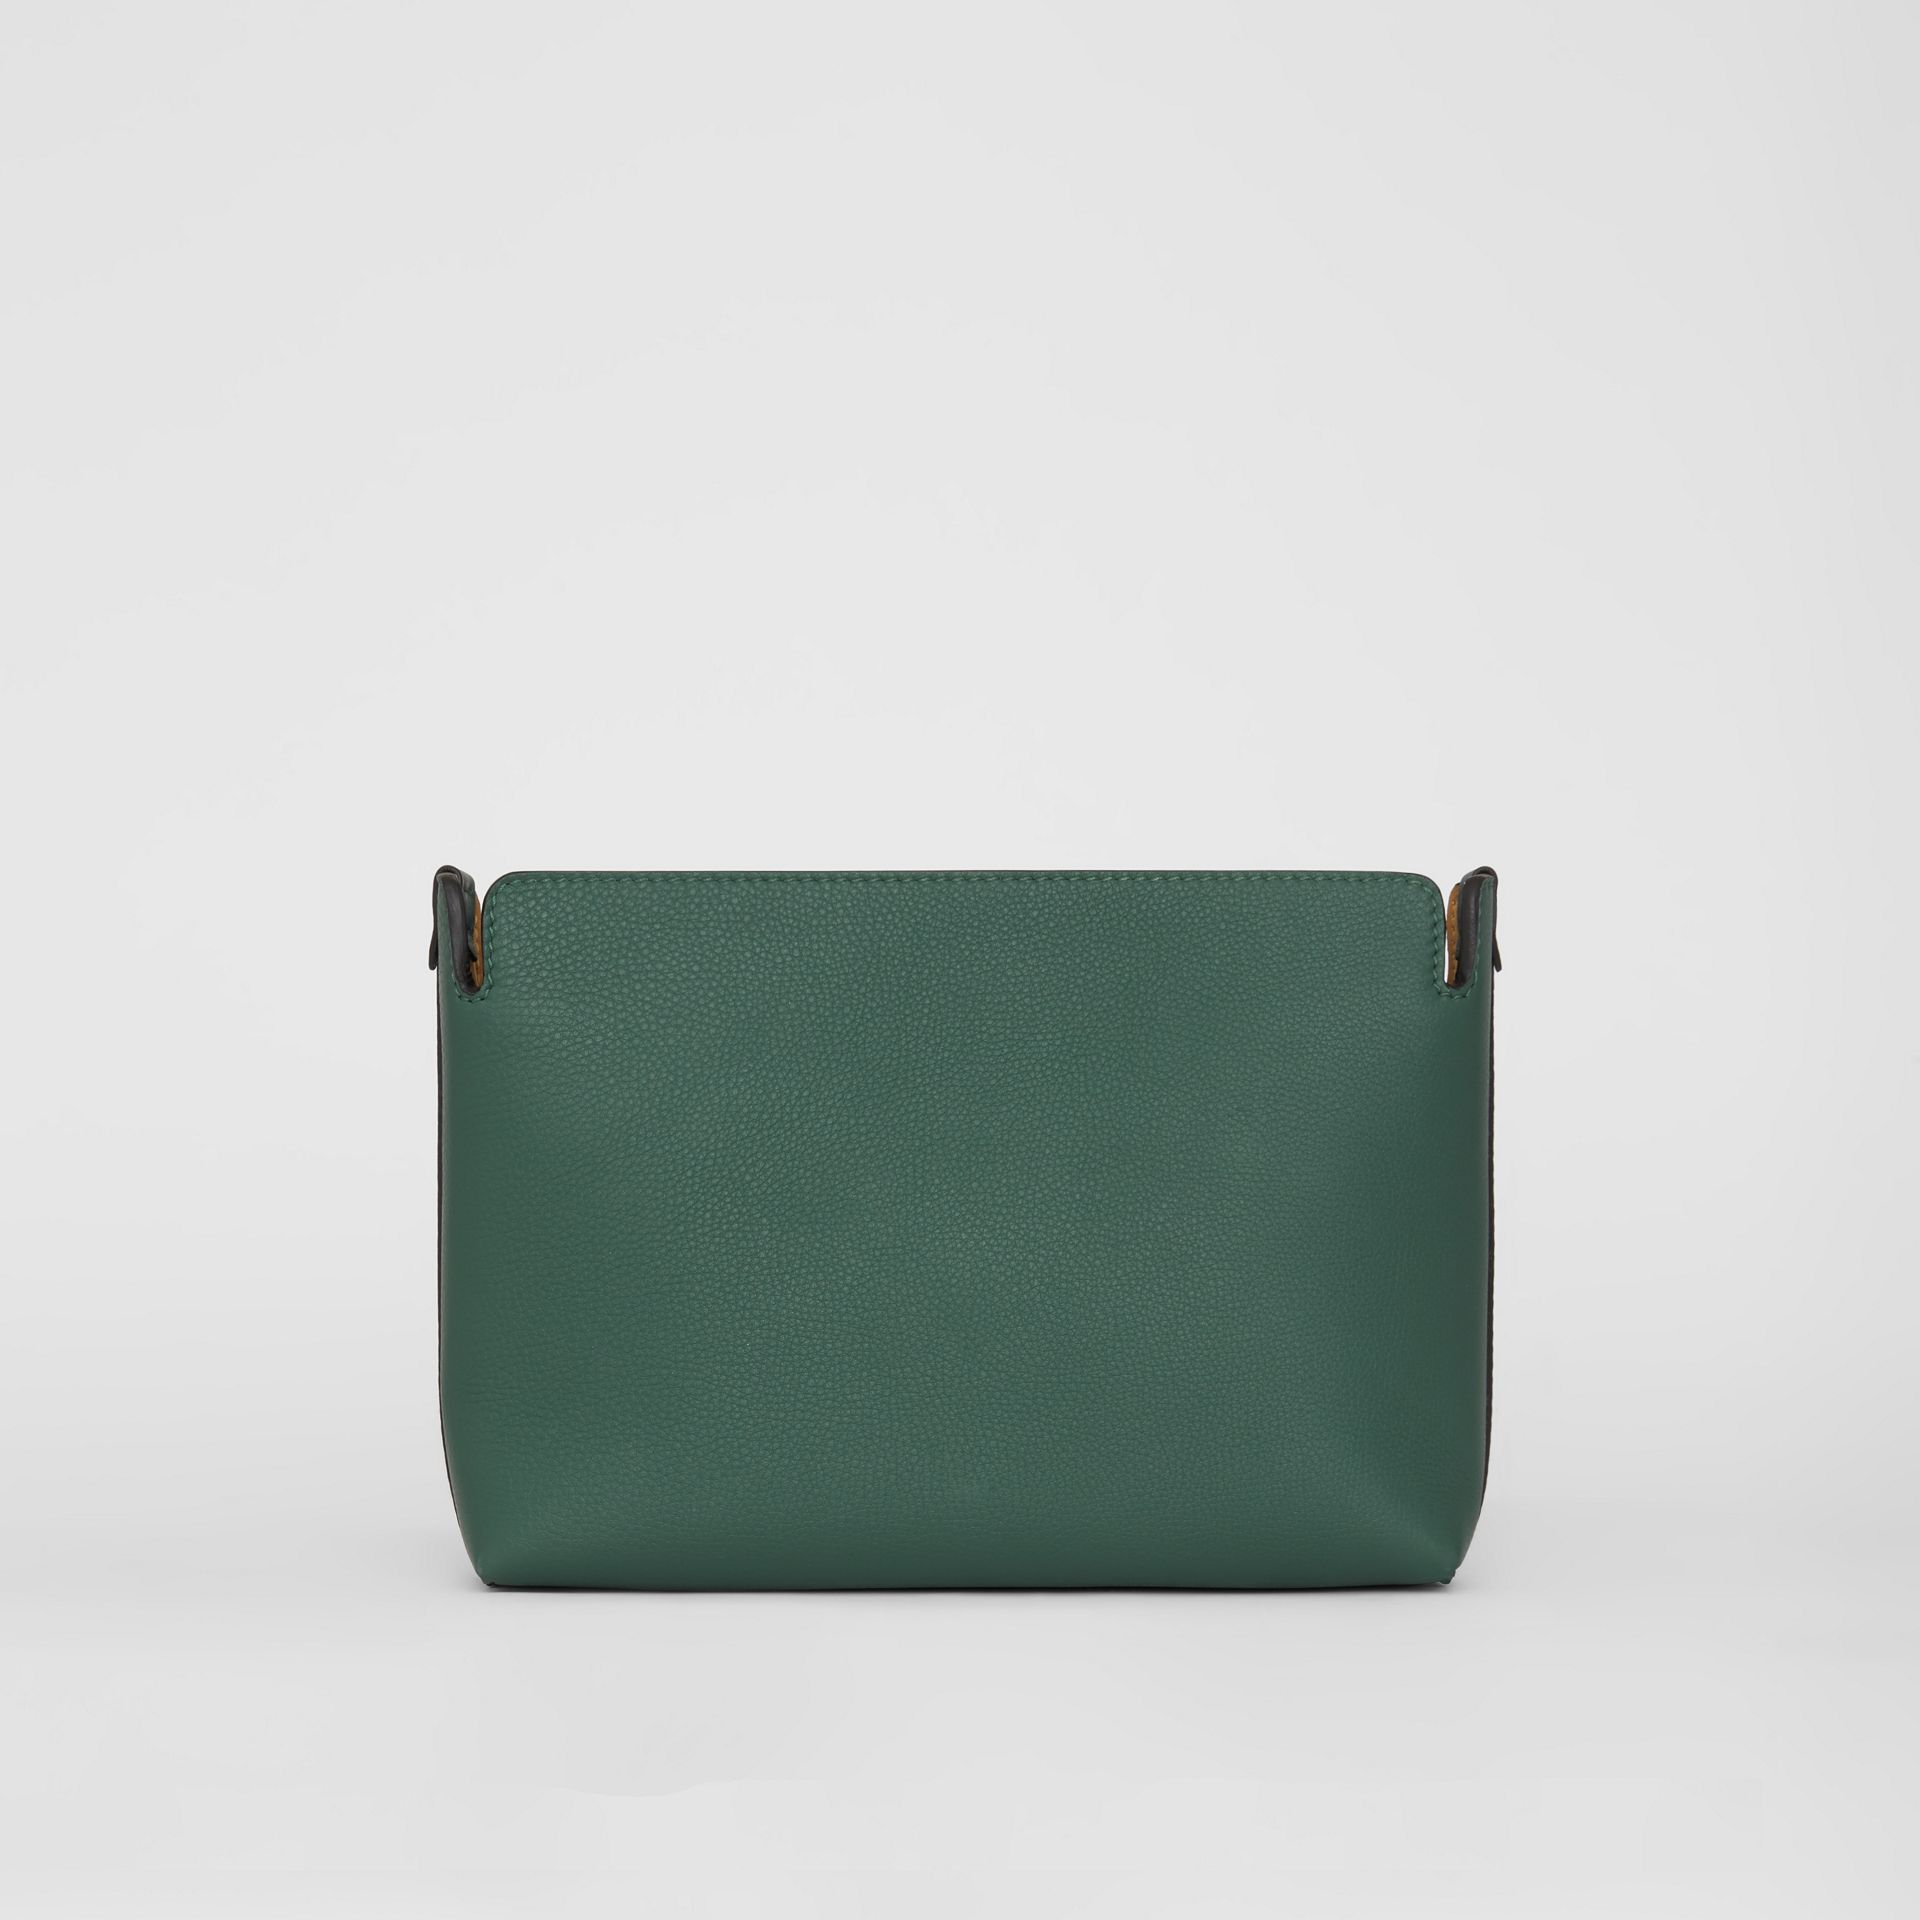 Medium Tri-tone Leather Clutch in Black/sea Green | Burberry - gallery image 7